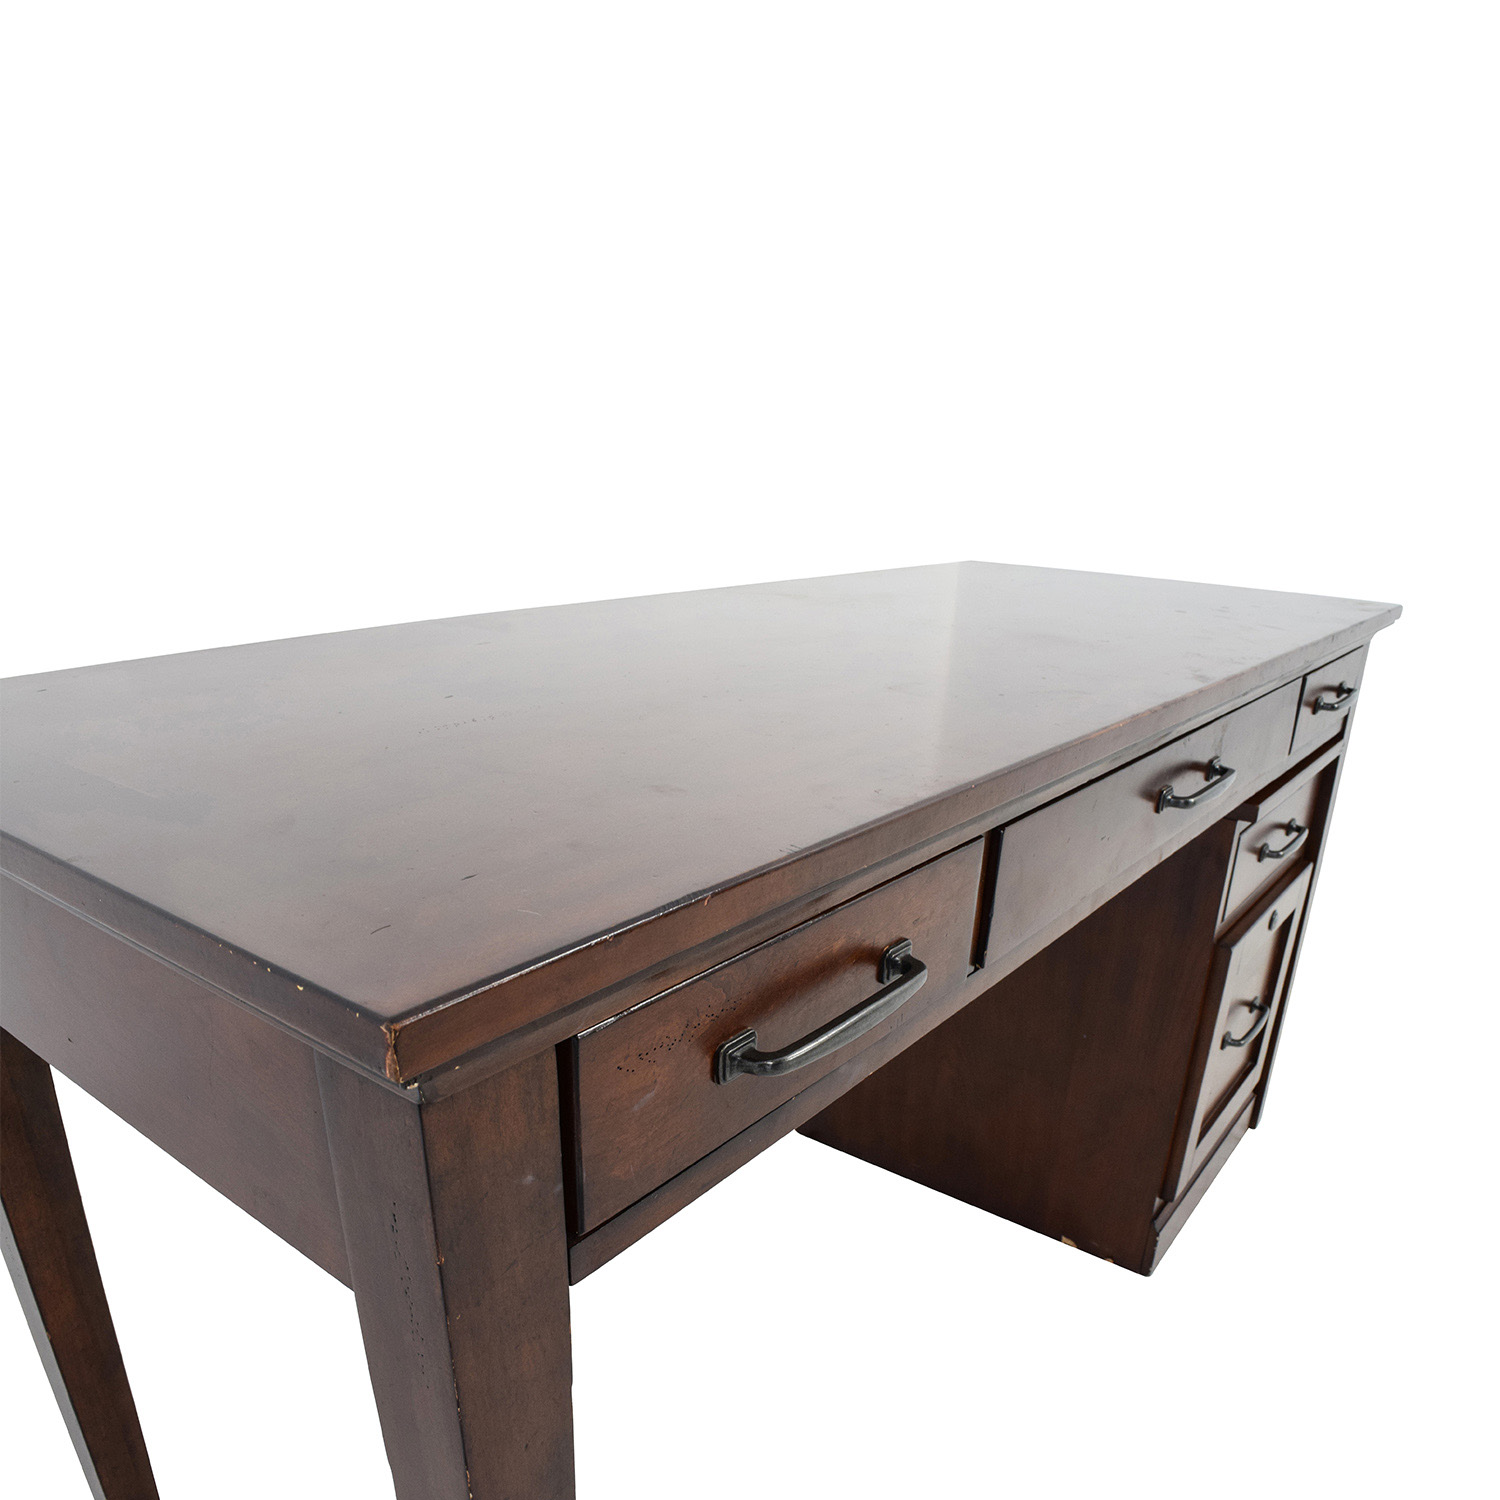 Nebraska Furniture Mart Nebraska Furniture Mart Desk and Rolling File Cabinet discount